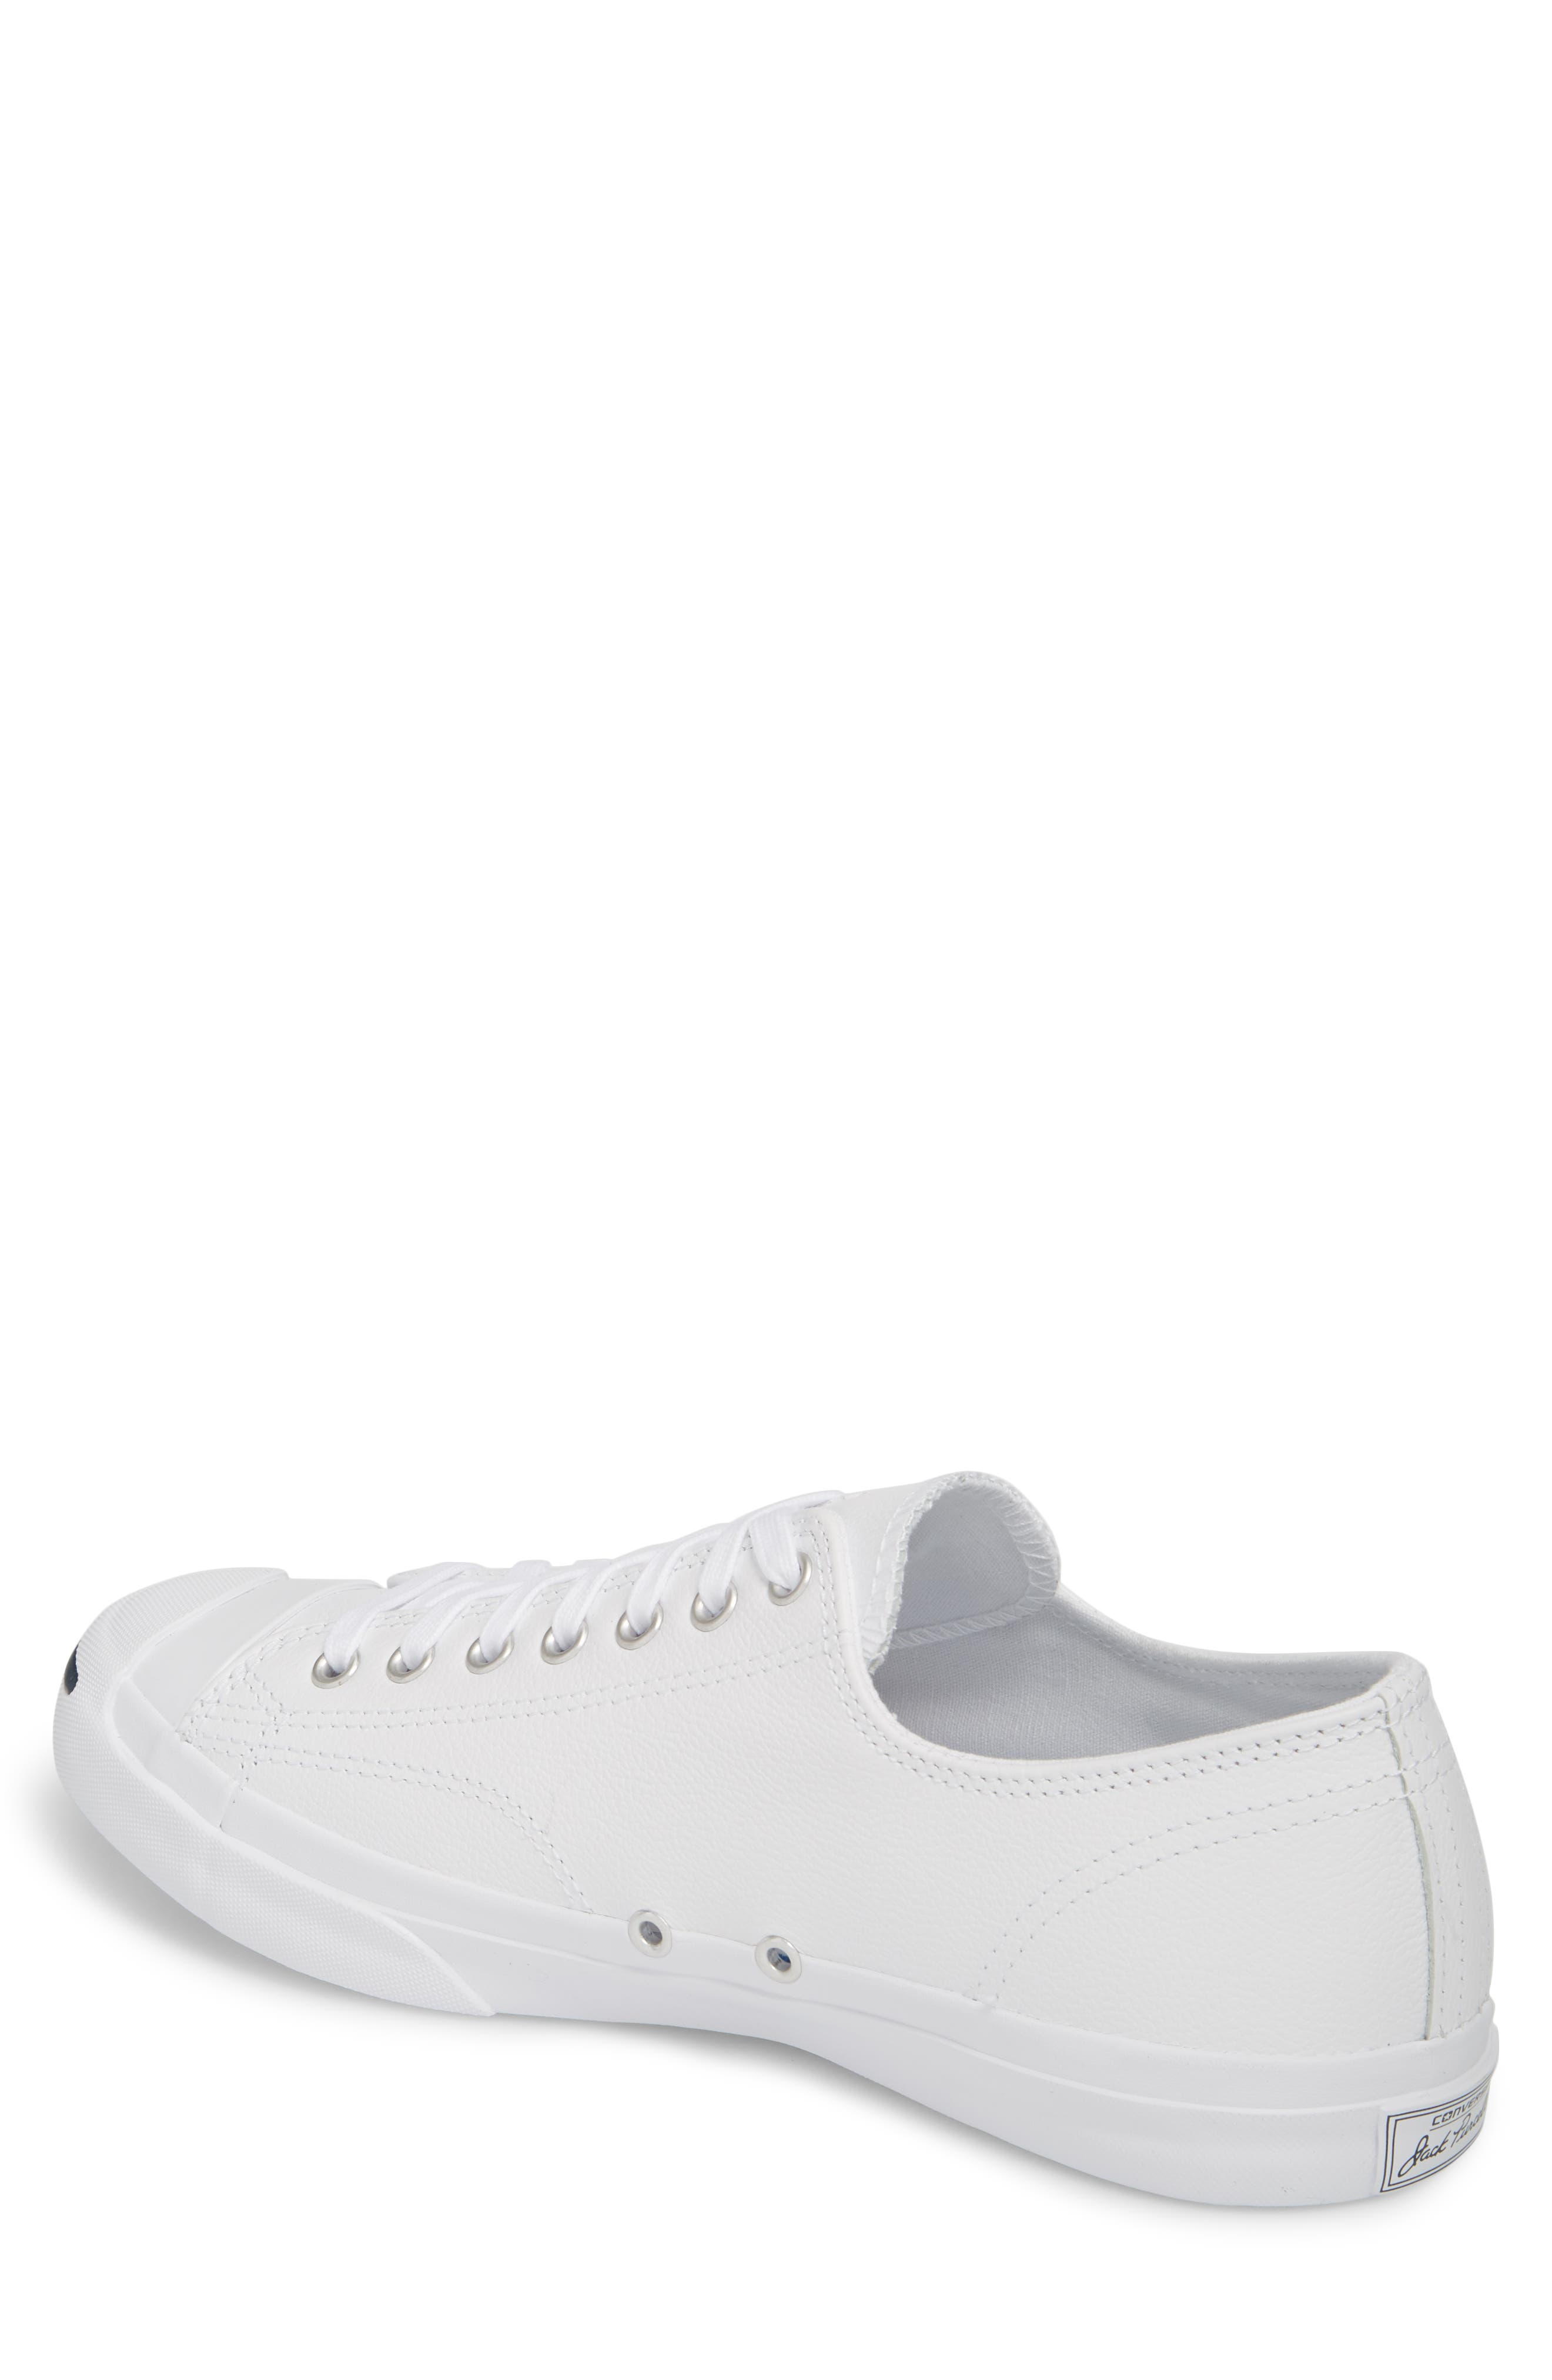 'Jack Purcell' Leather Sneaker,                             Alternate thumbnail 2, color,                             White/ Navy